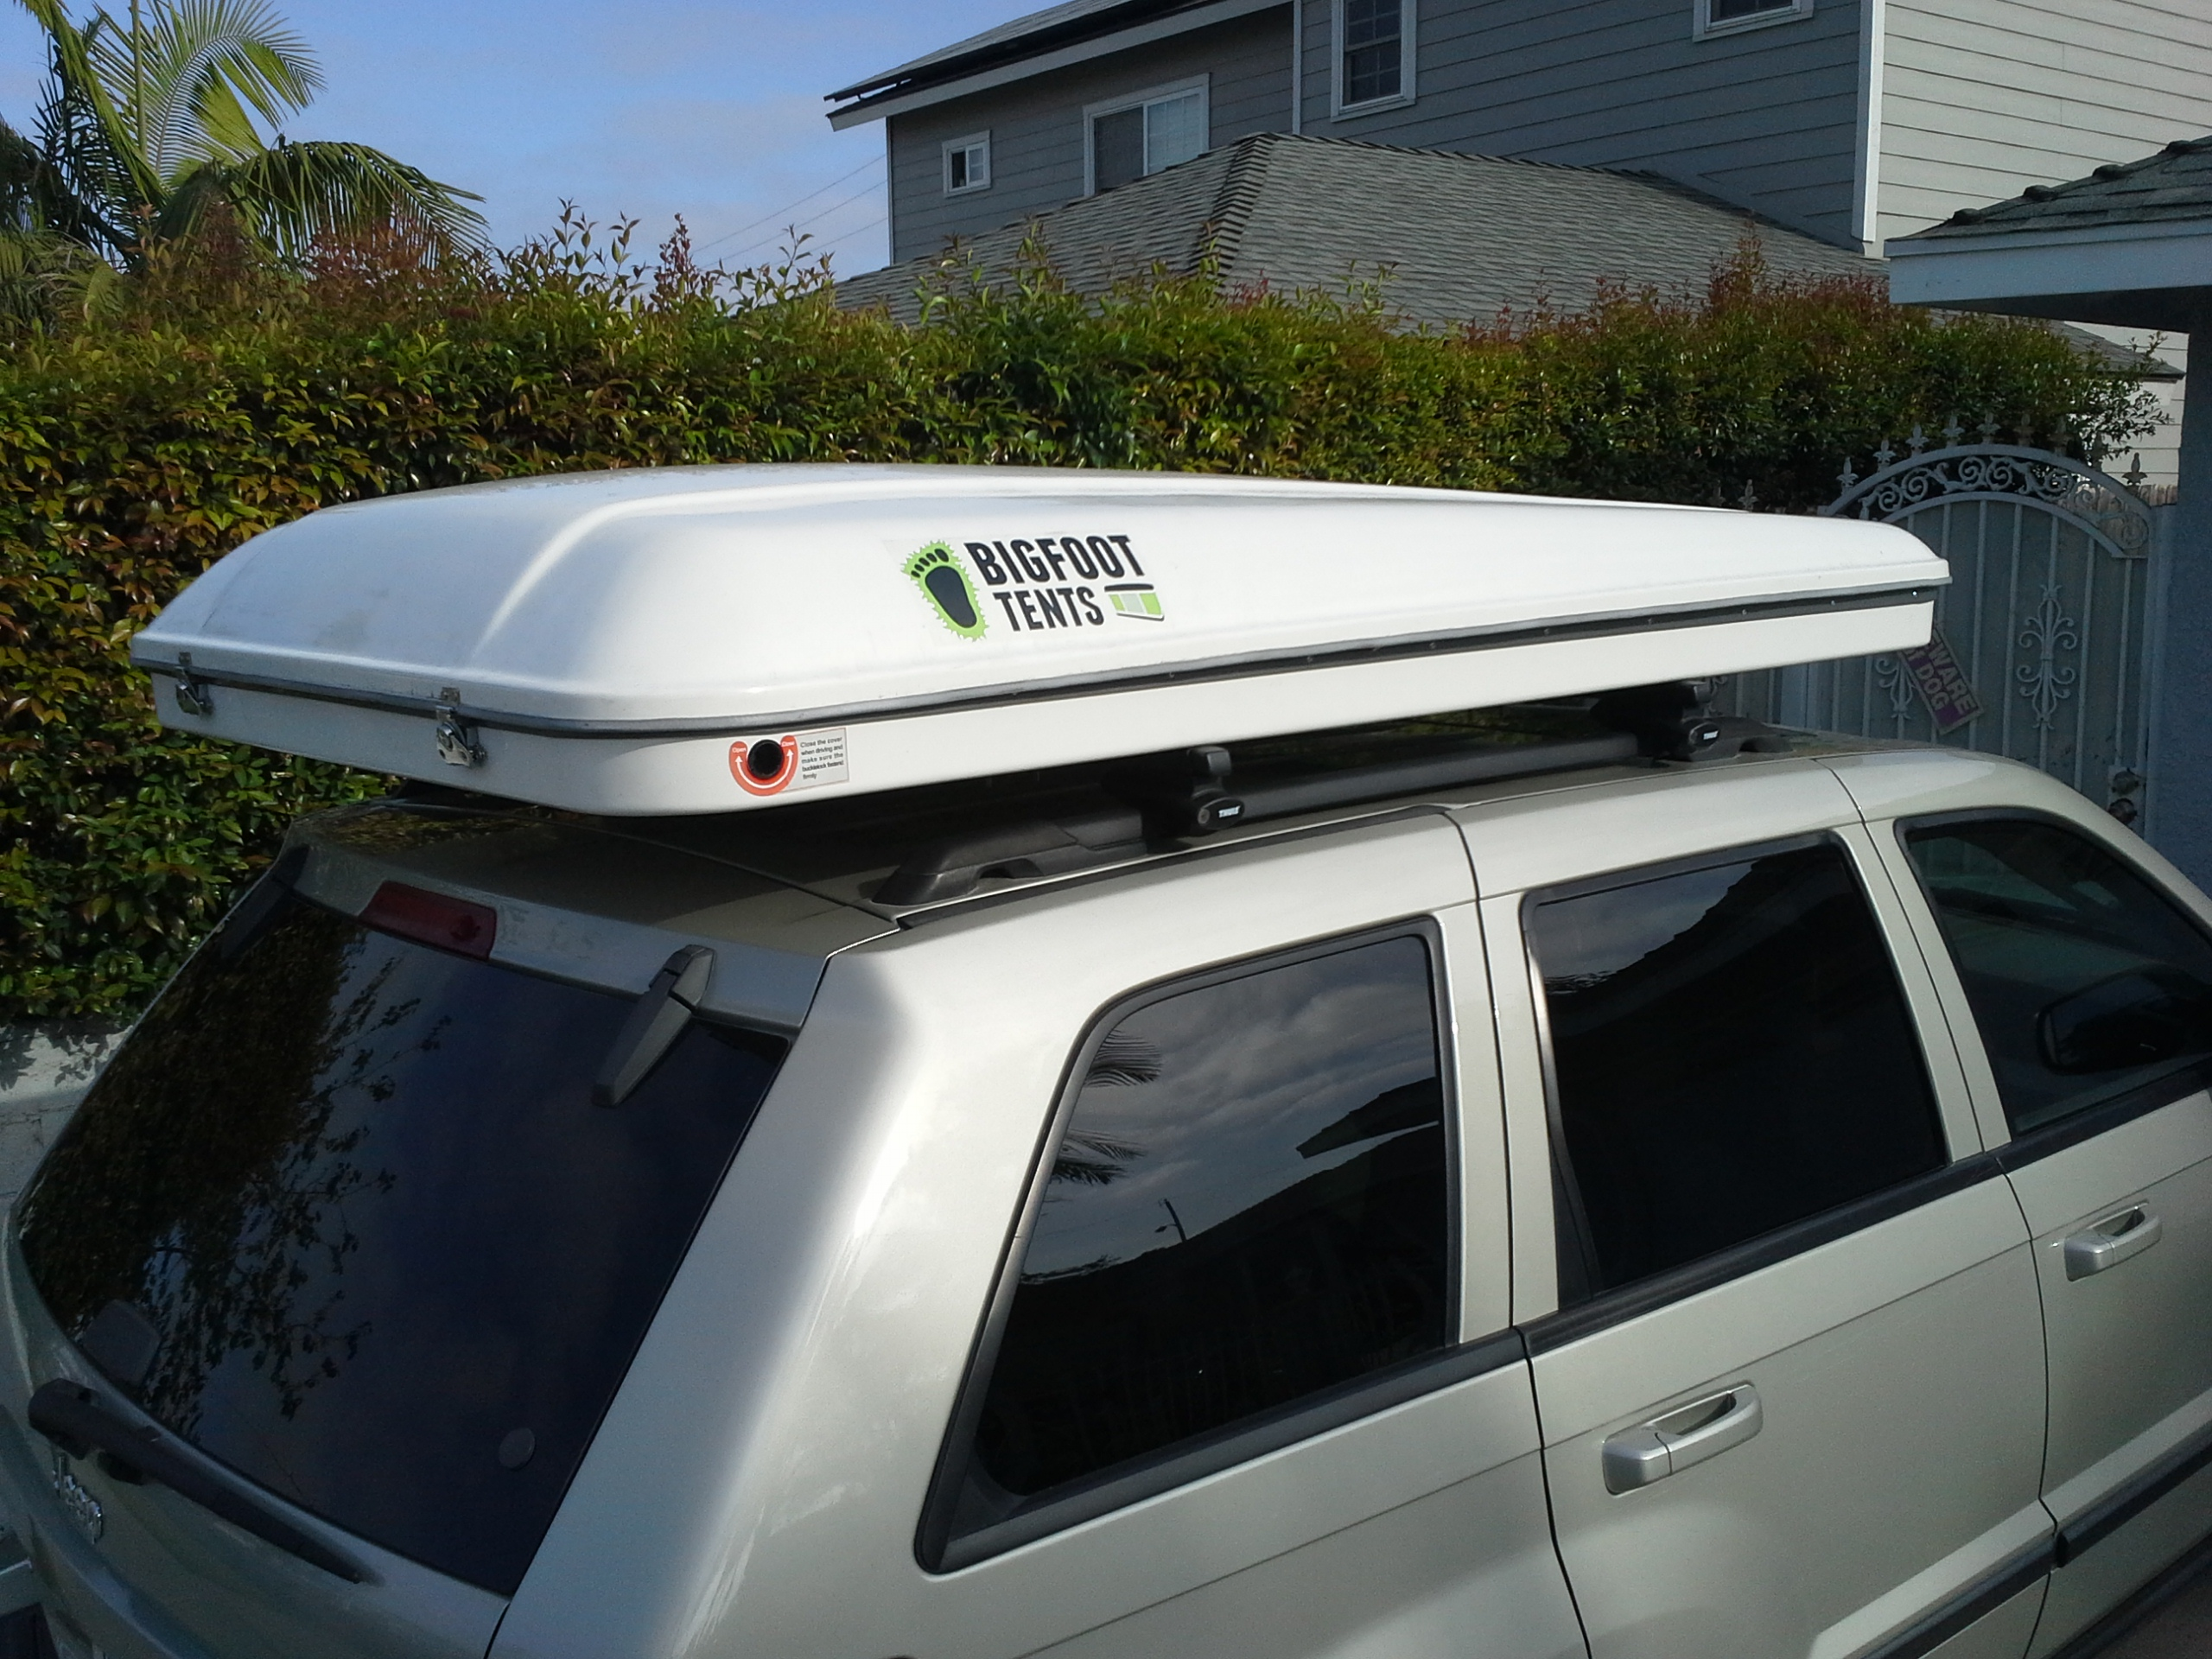 Bigfoot roof top tents in huntington beach ca whitepages for King s fish house huntington beach